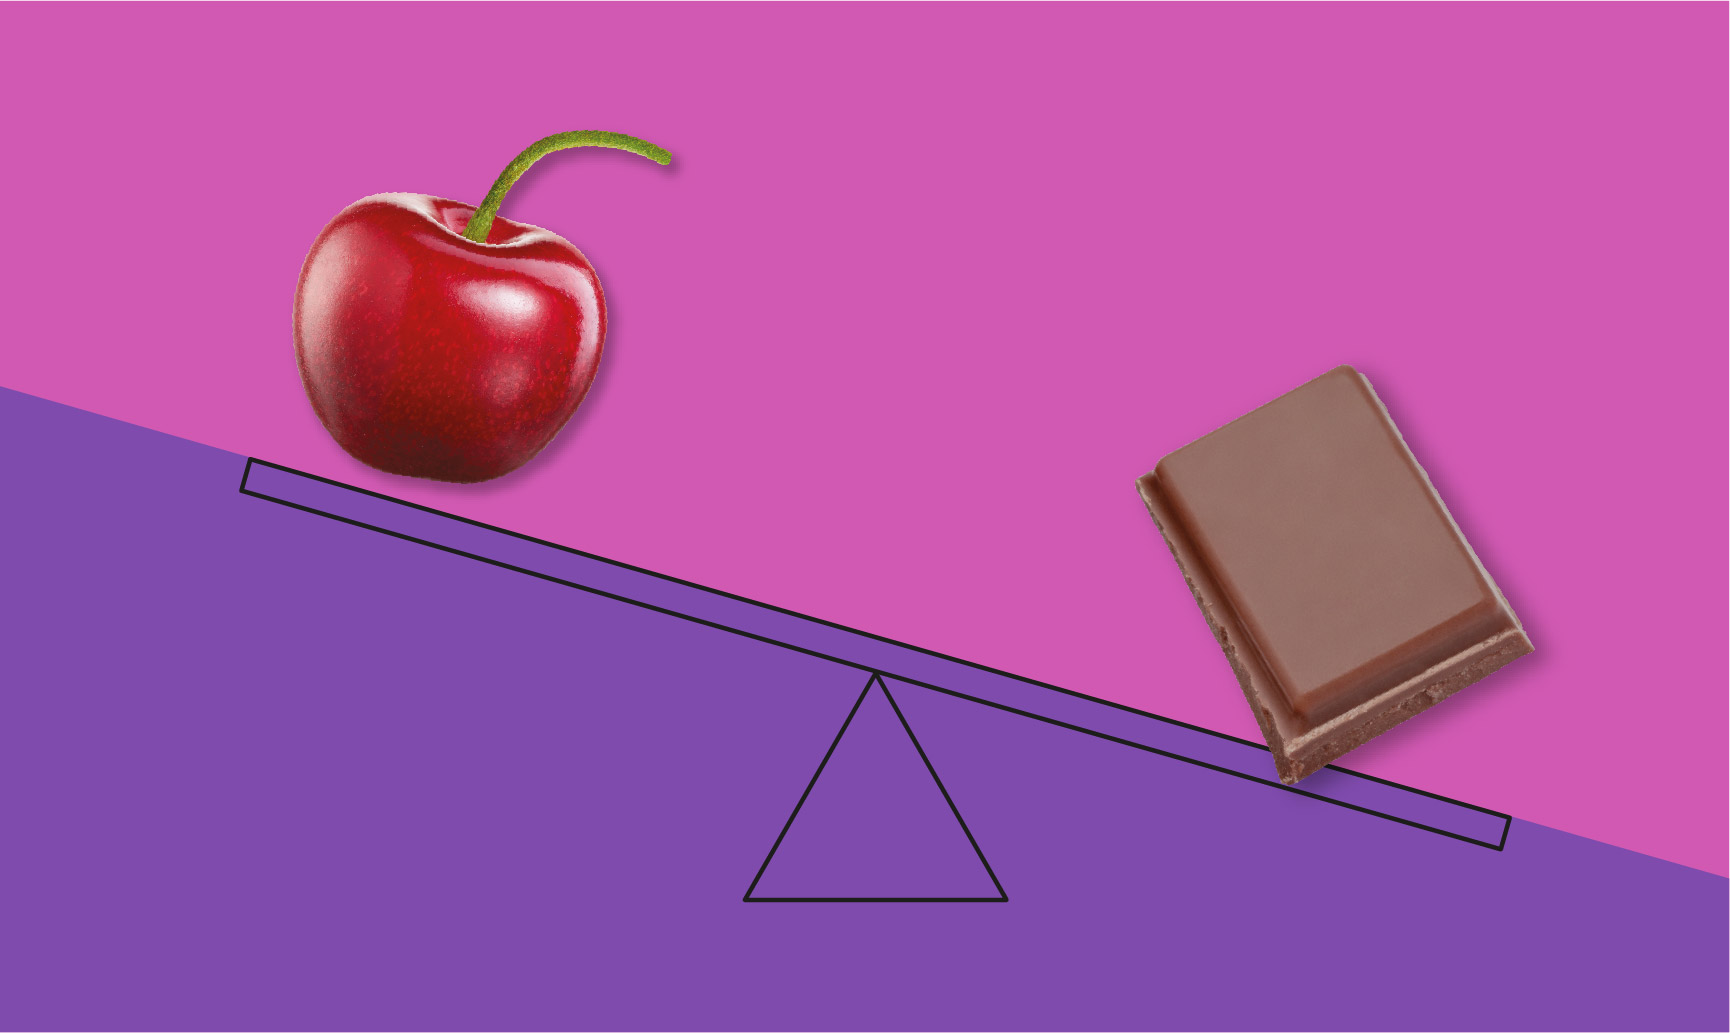 balancing cherry and chocolate illustration